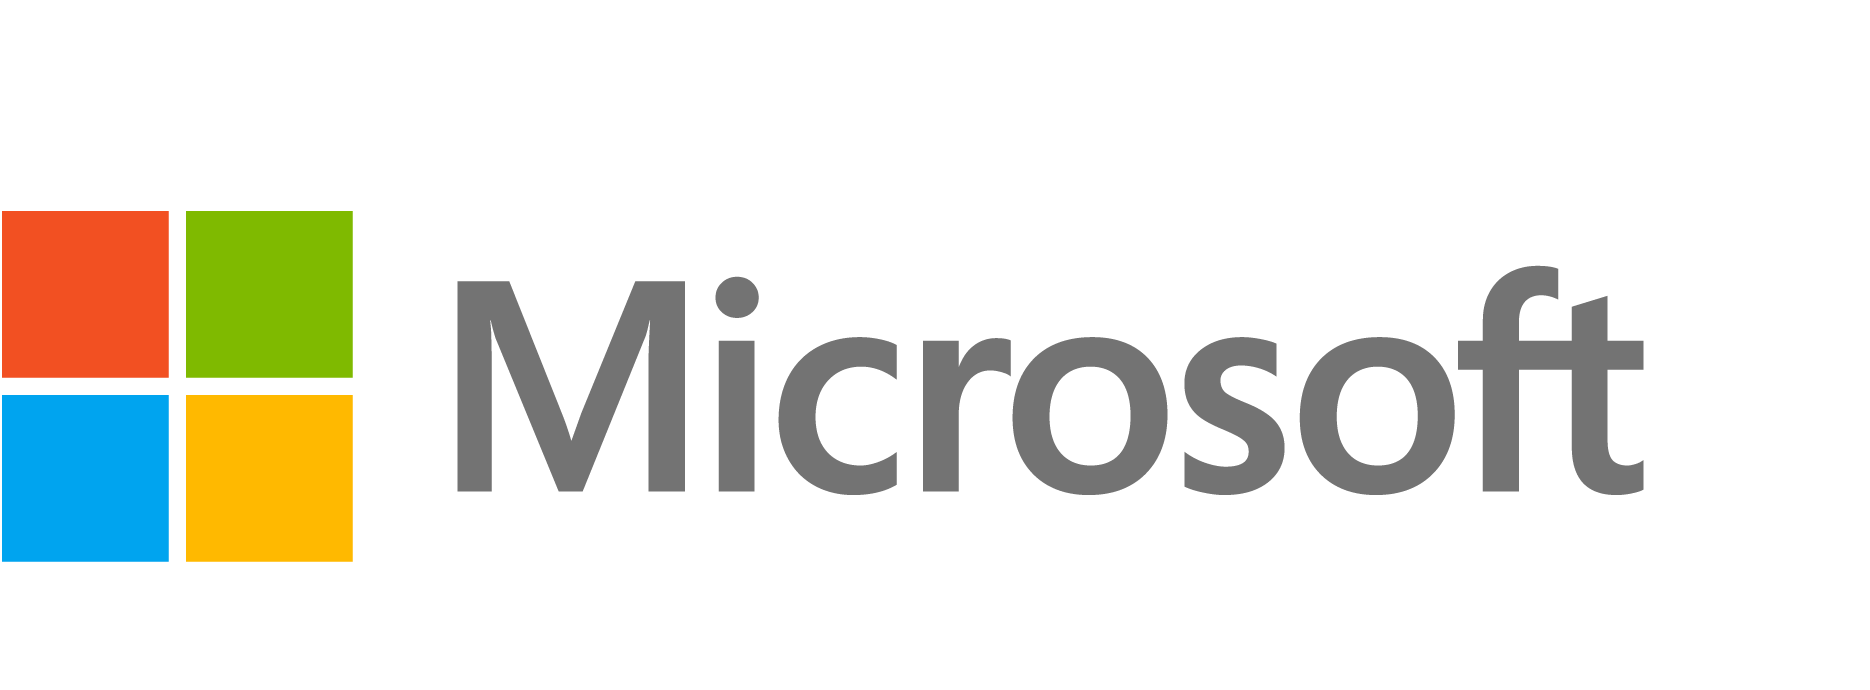 Strengthen your security with new Microsoft identity partner integrations at Ignite 2021